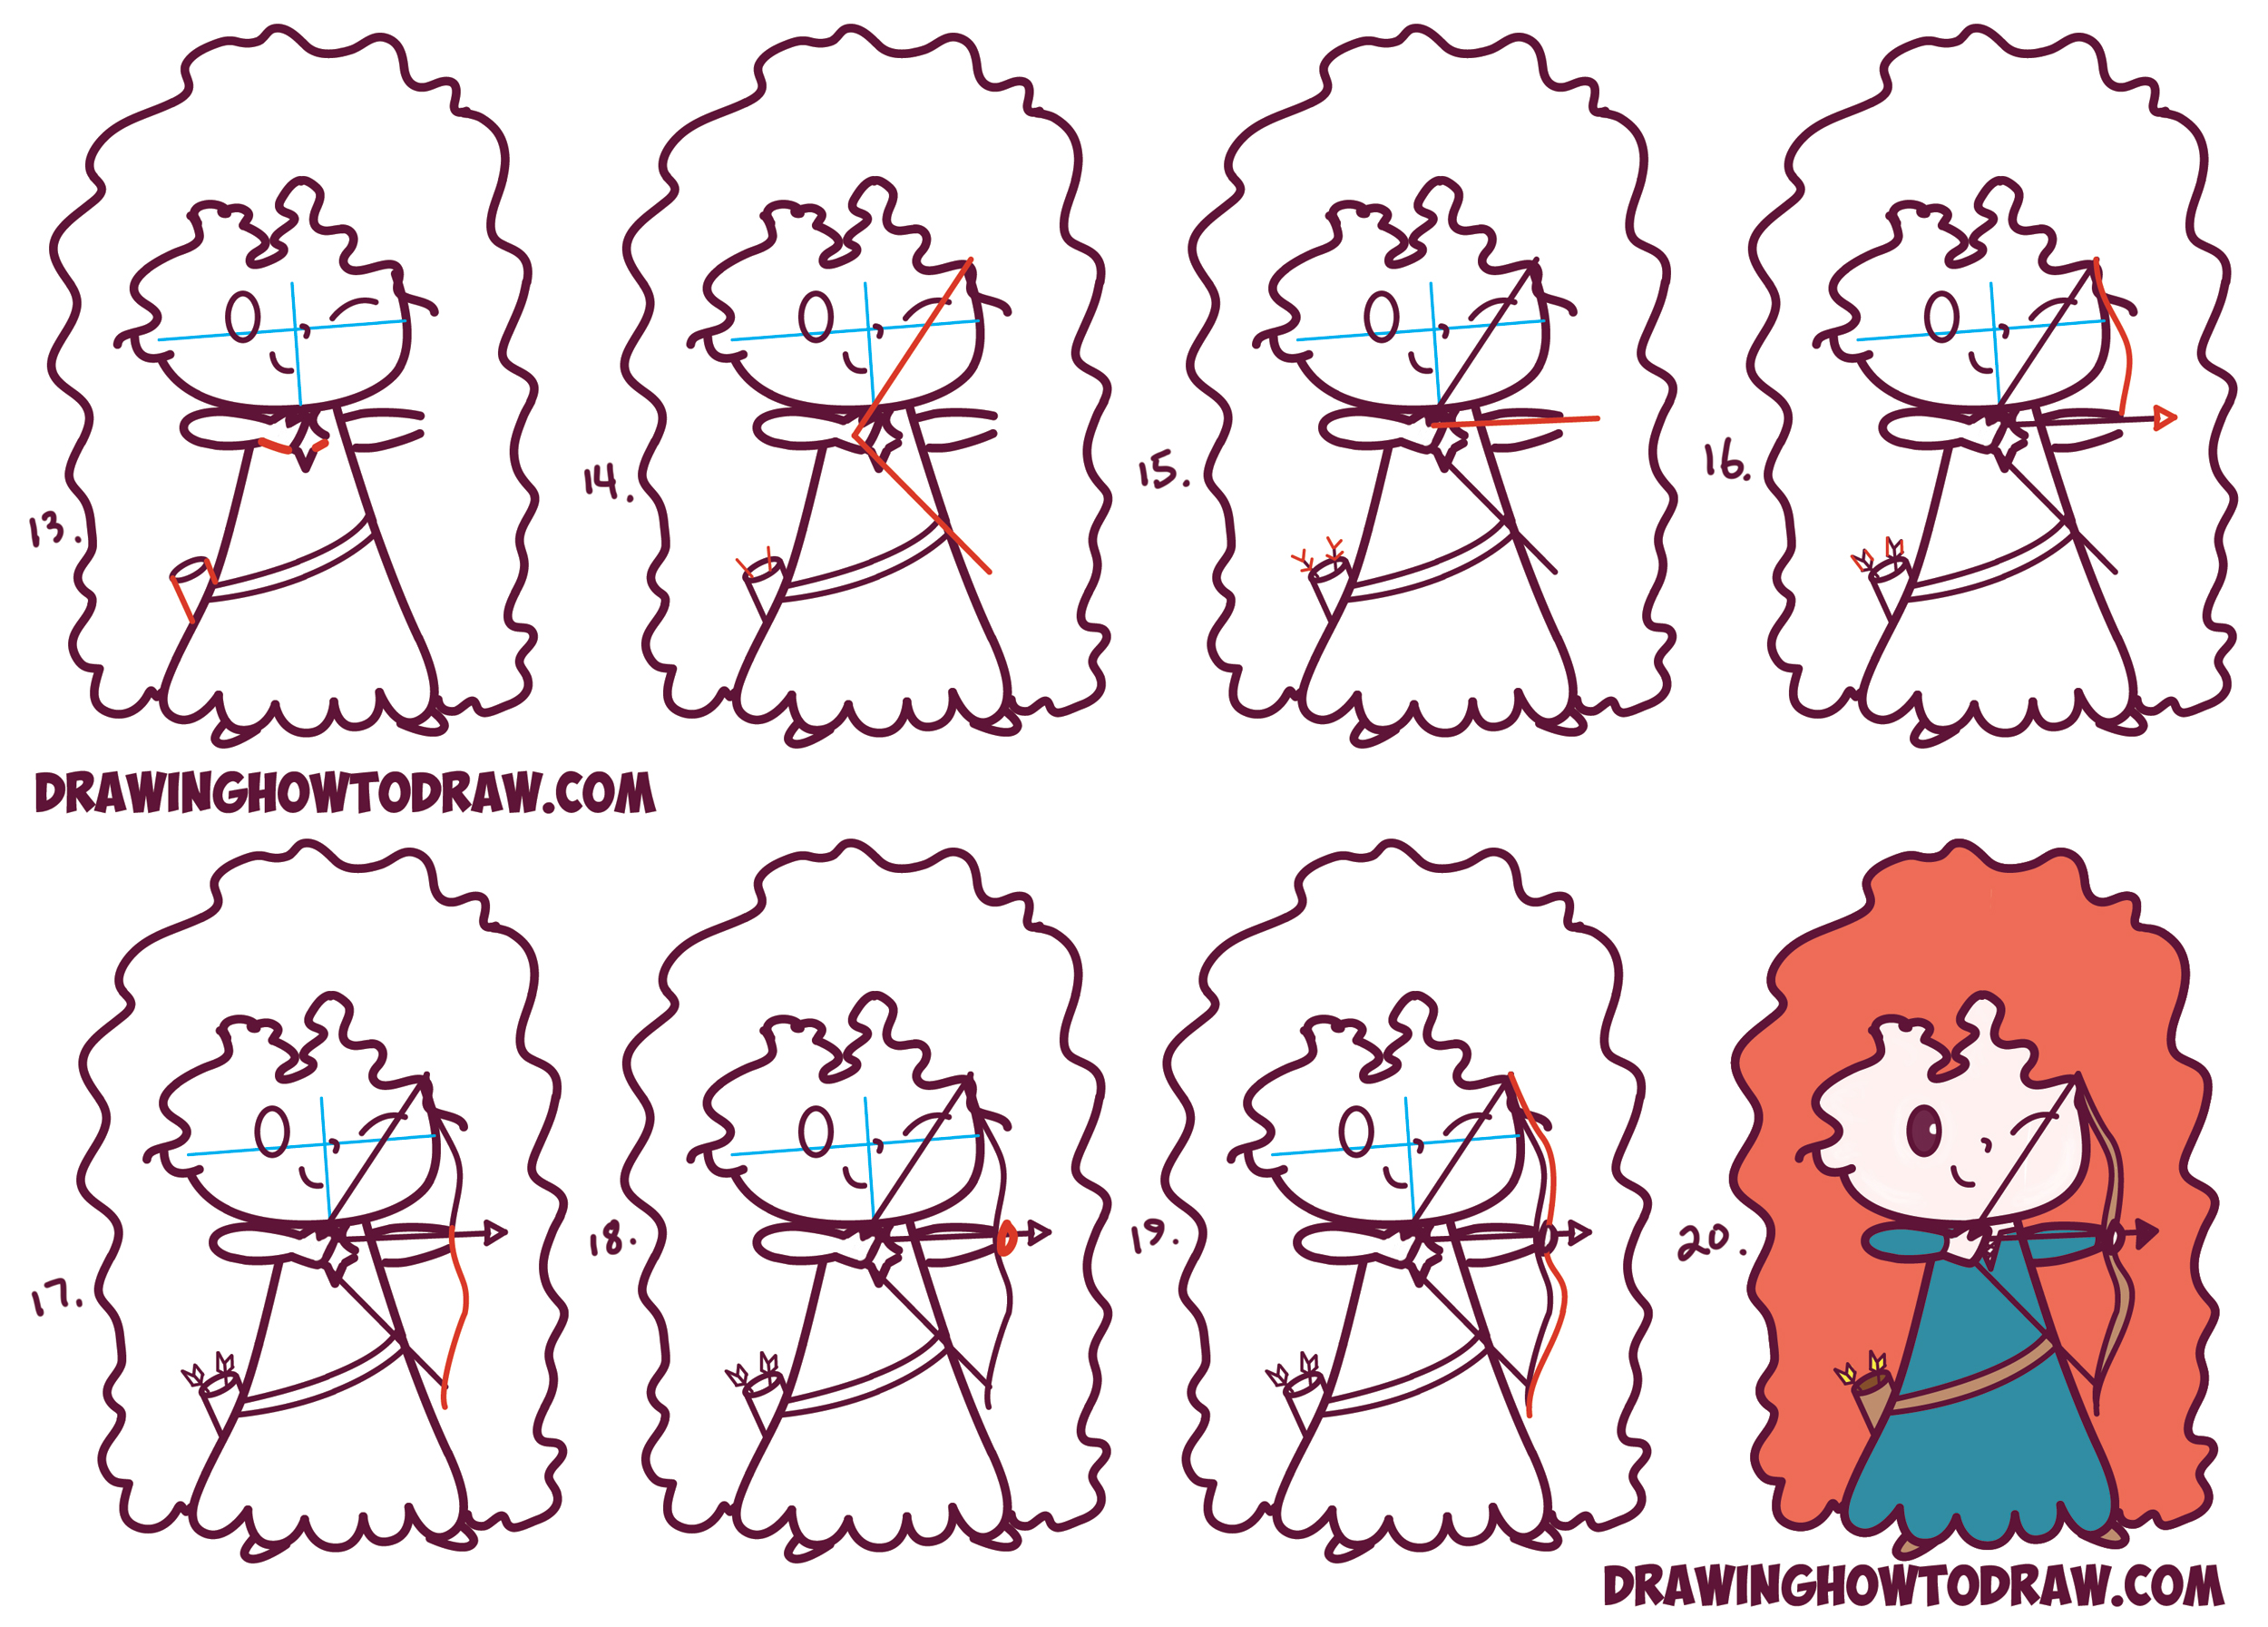 How To Draw Cute Kawaii Chibi Merida From Disney Pixar's